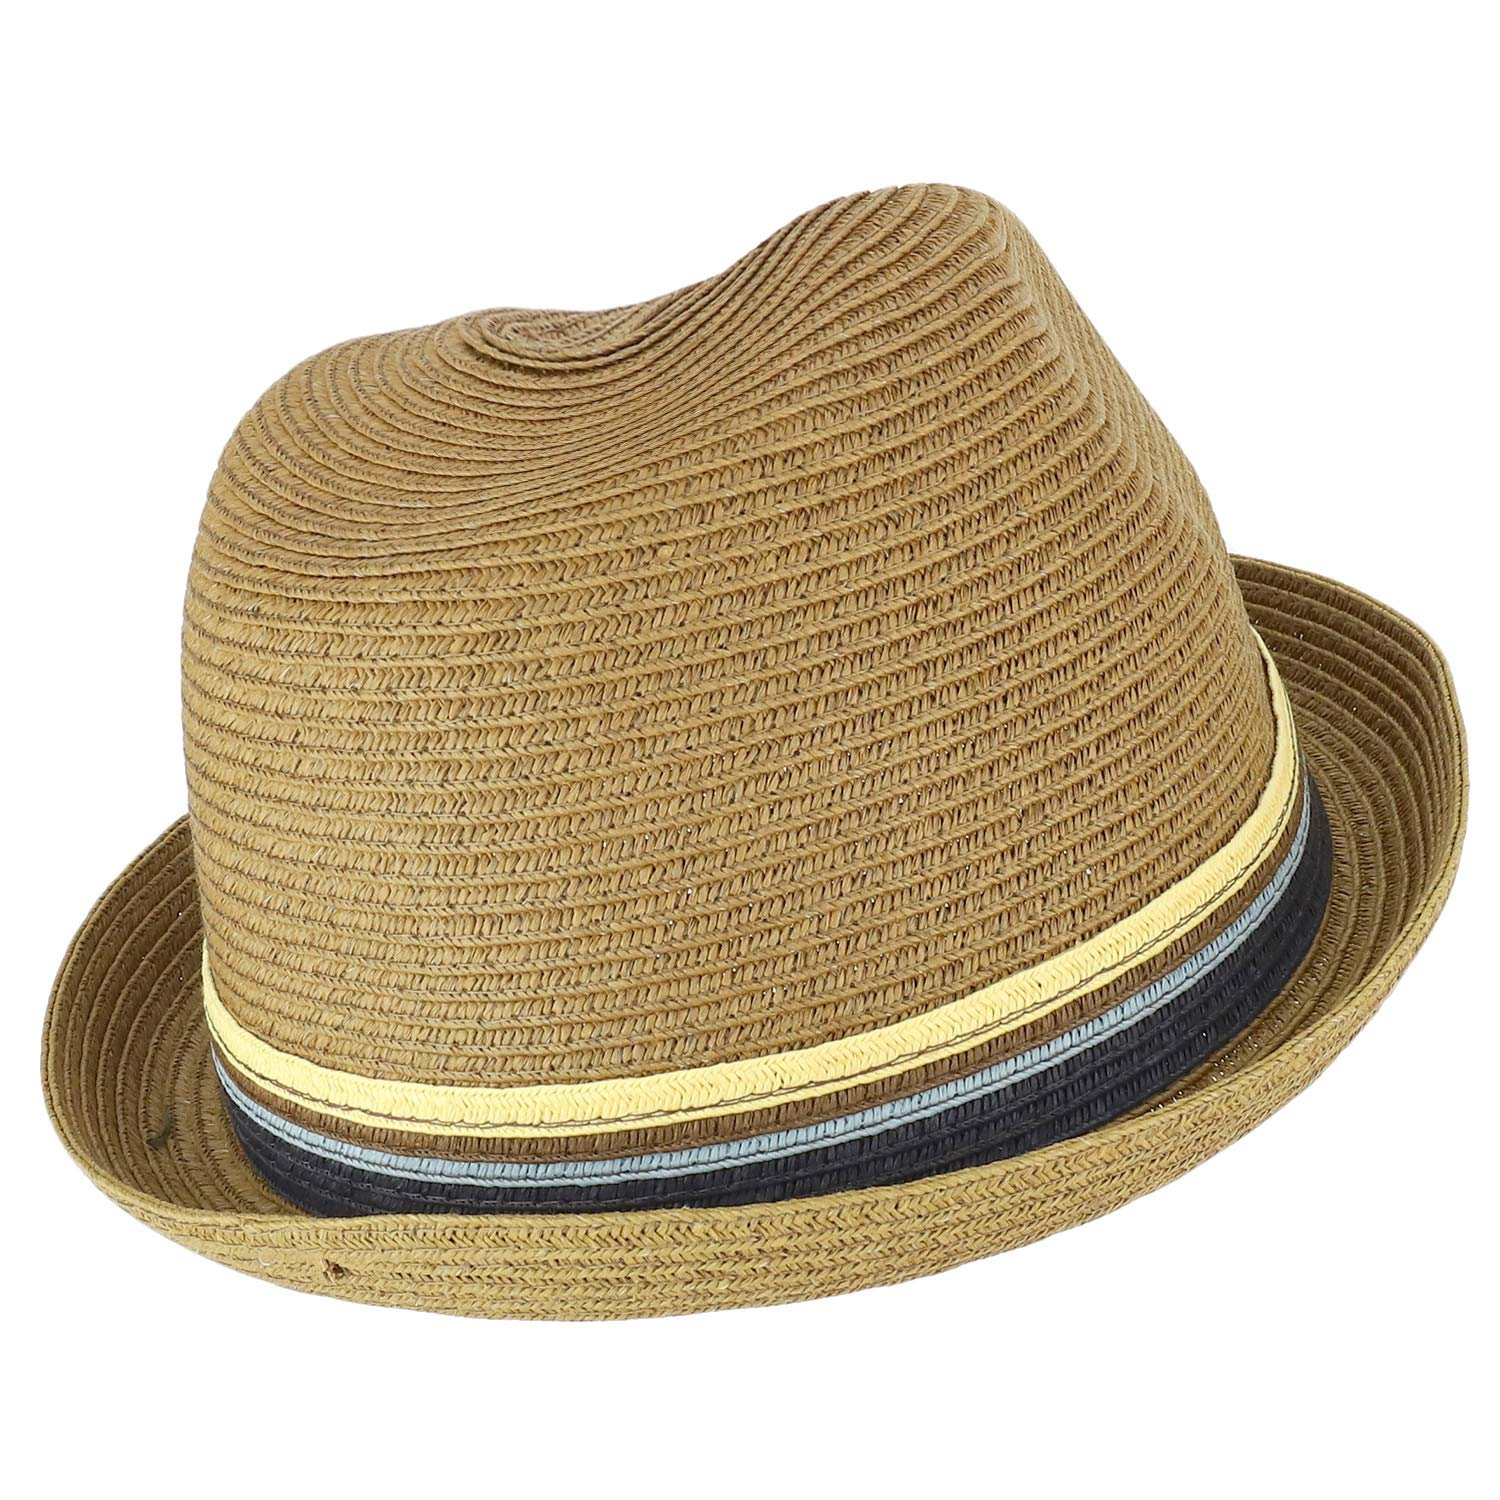 Armycrew Paper Braid Summer Pork Pie Fedora Hat with Tri Color Striped Band